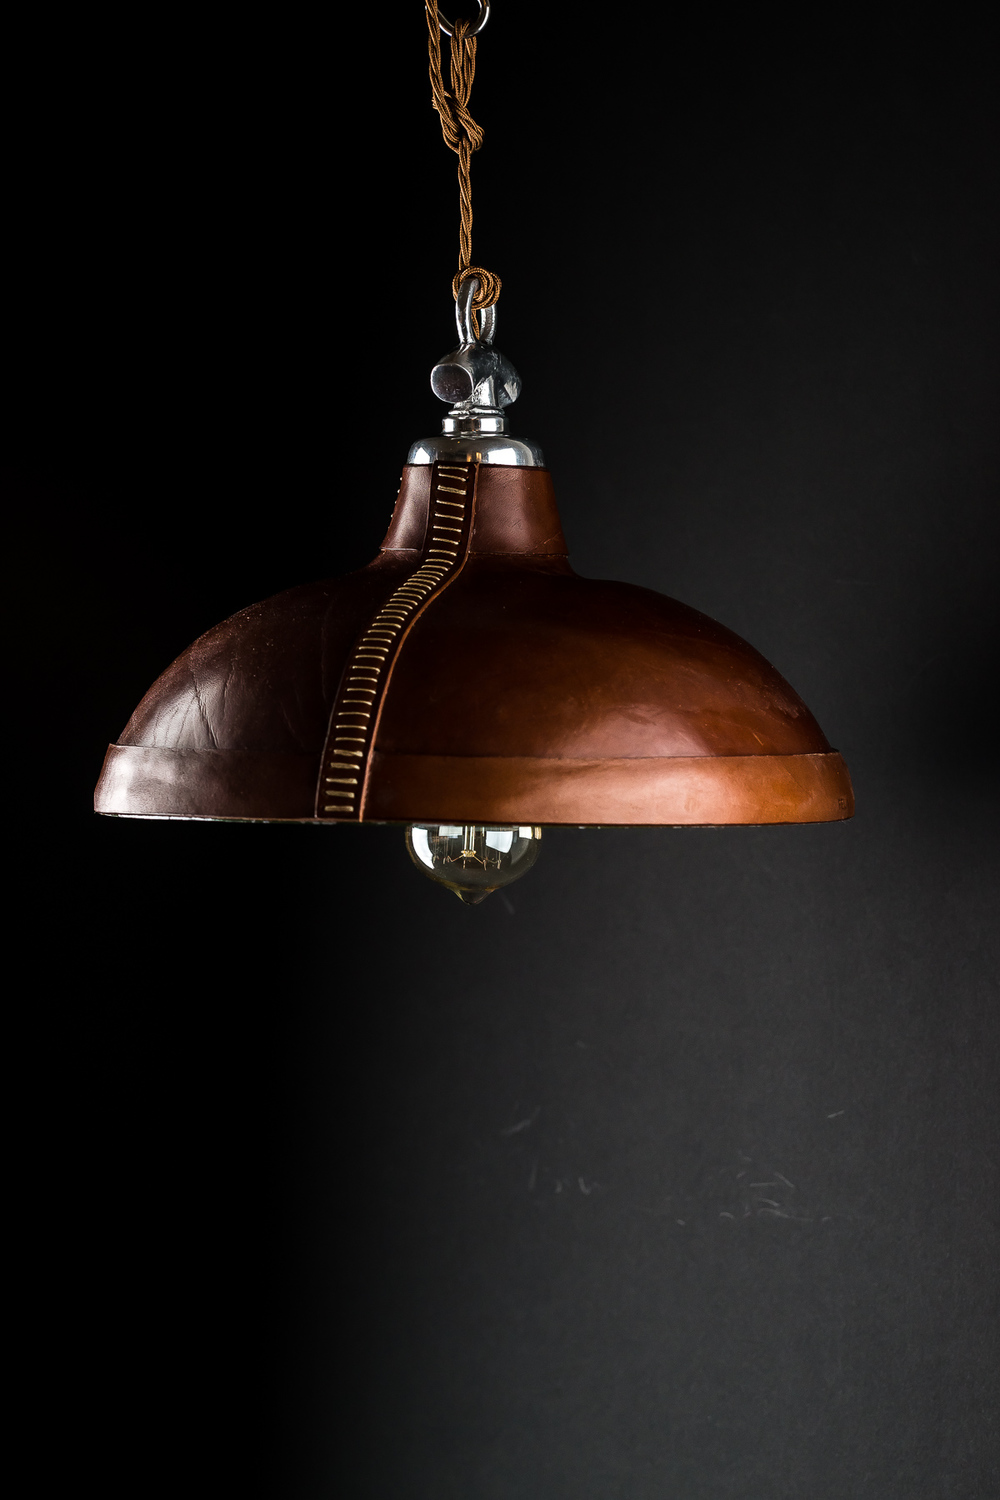 Hand Moulded and Stitched Leather Pendant05.jpg